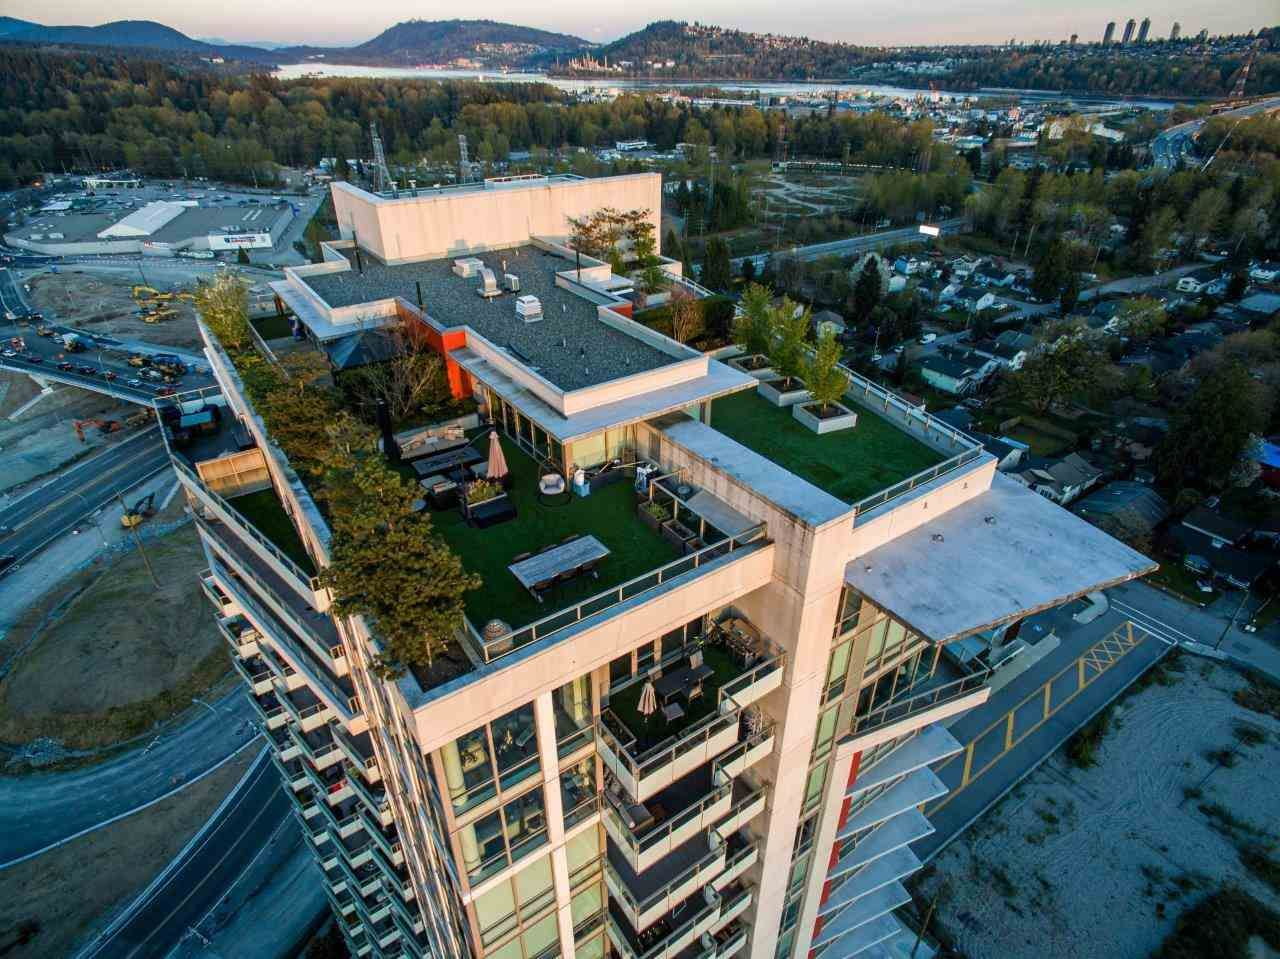 """Main Photo: PH2504 1550 FERN Street in North Vancouver: Lynnmour Condo for sale in """"Beacon at Seylynn Village"""" : MLS®# R2569044"""